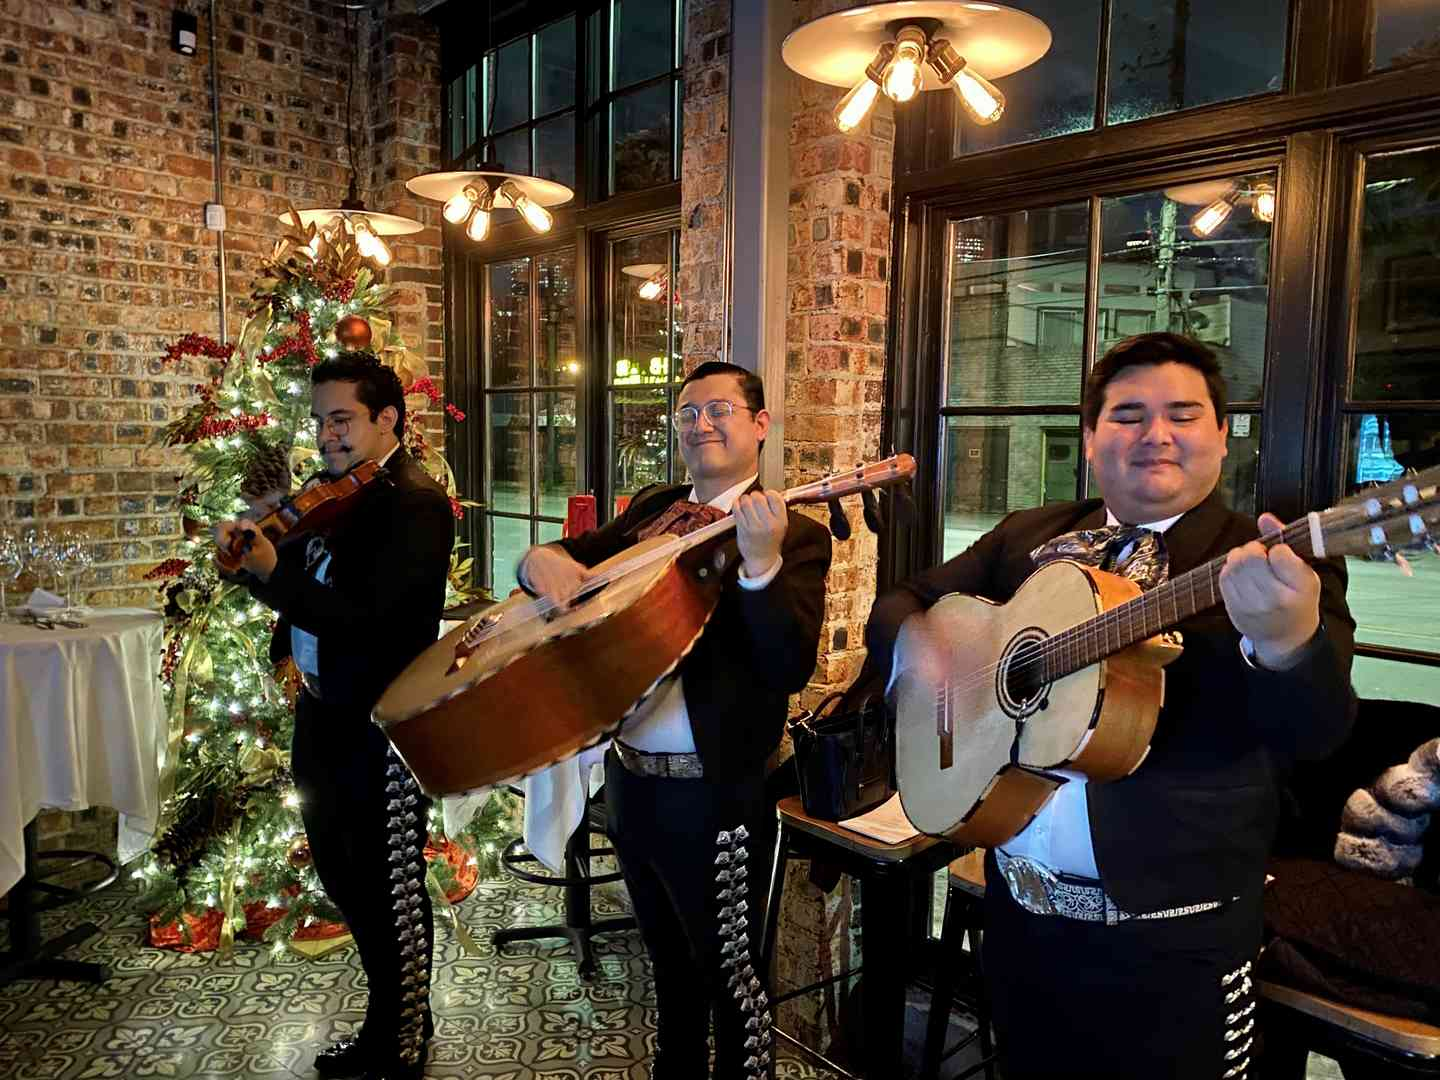 mariachis playing in butcher shop